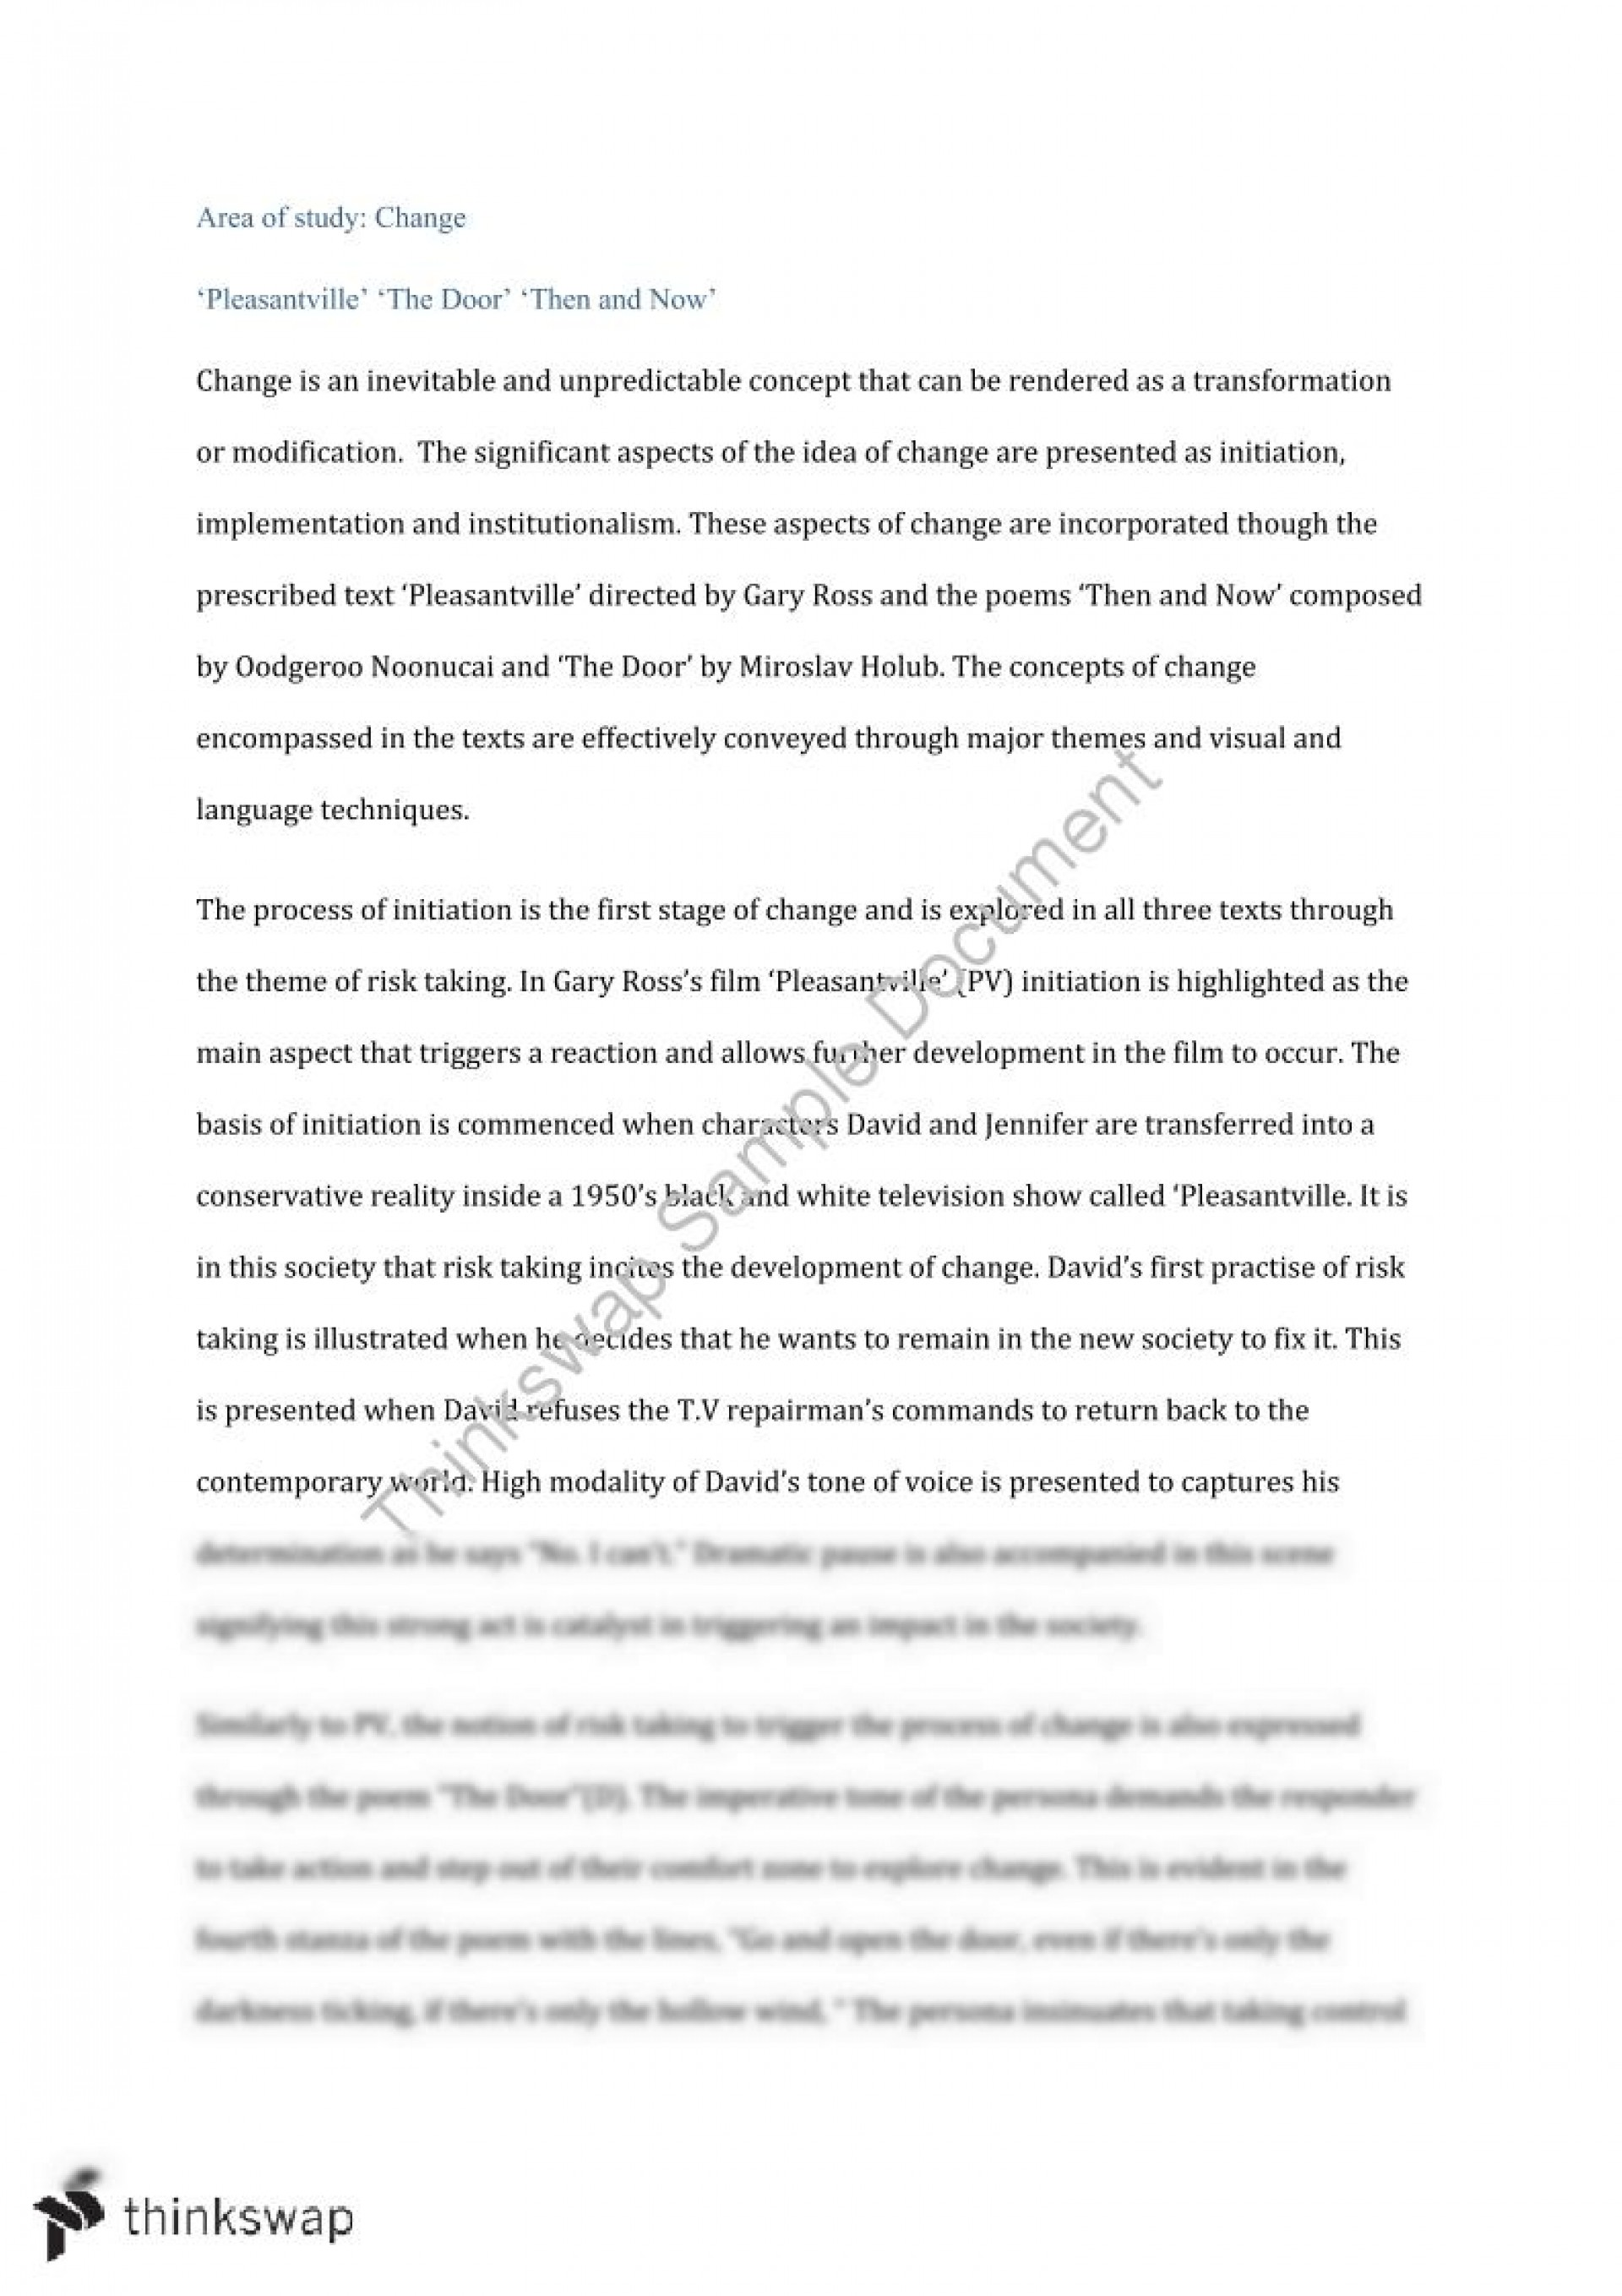 003 Change Essay 58348 Aoschangeessay Docx Fadded31 Awesome Topics The World Contest Titles 1920